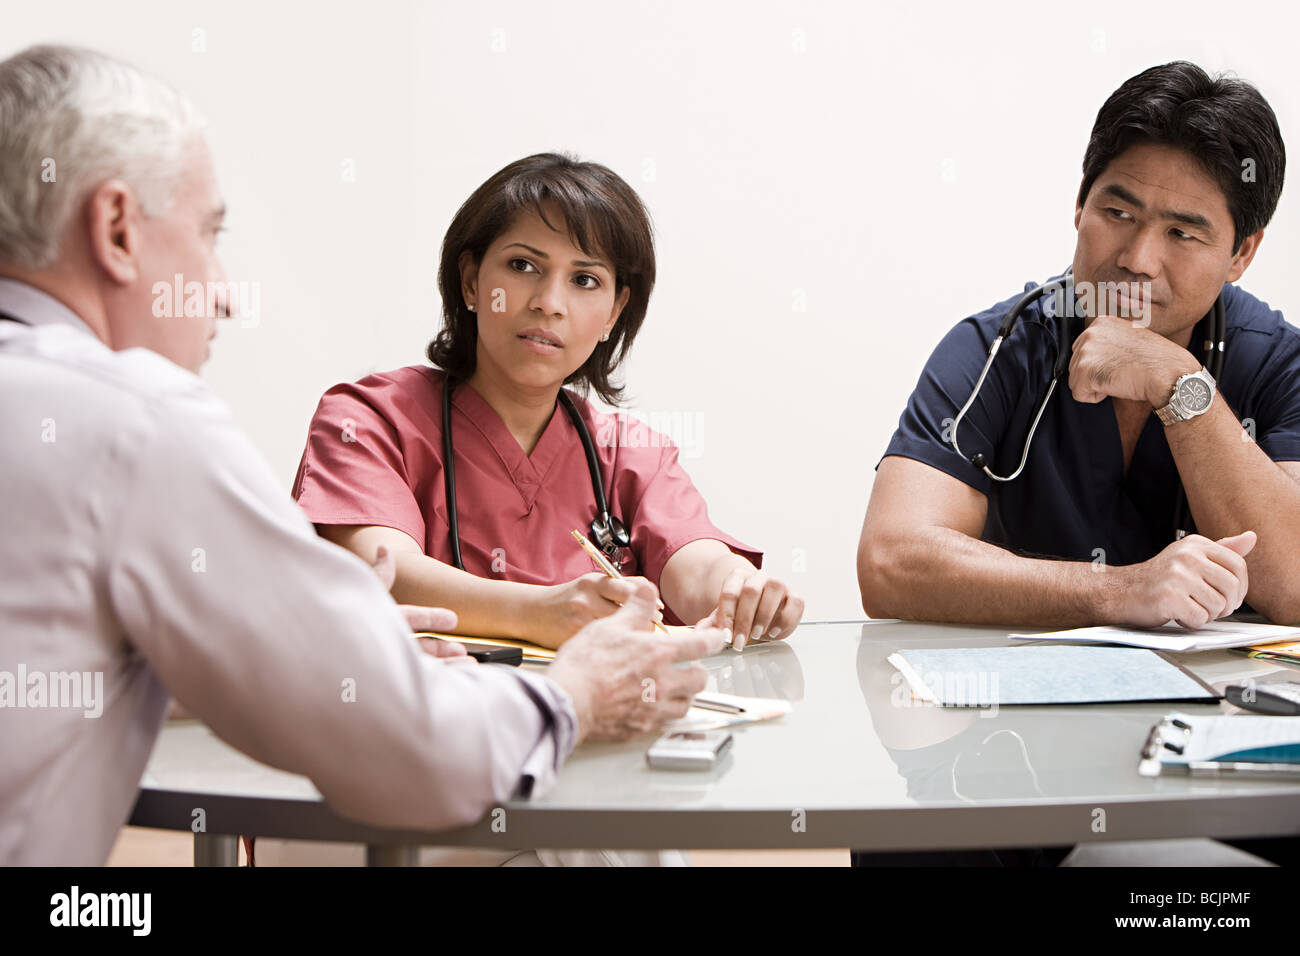 Doctors in a meeting - Stock Image